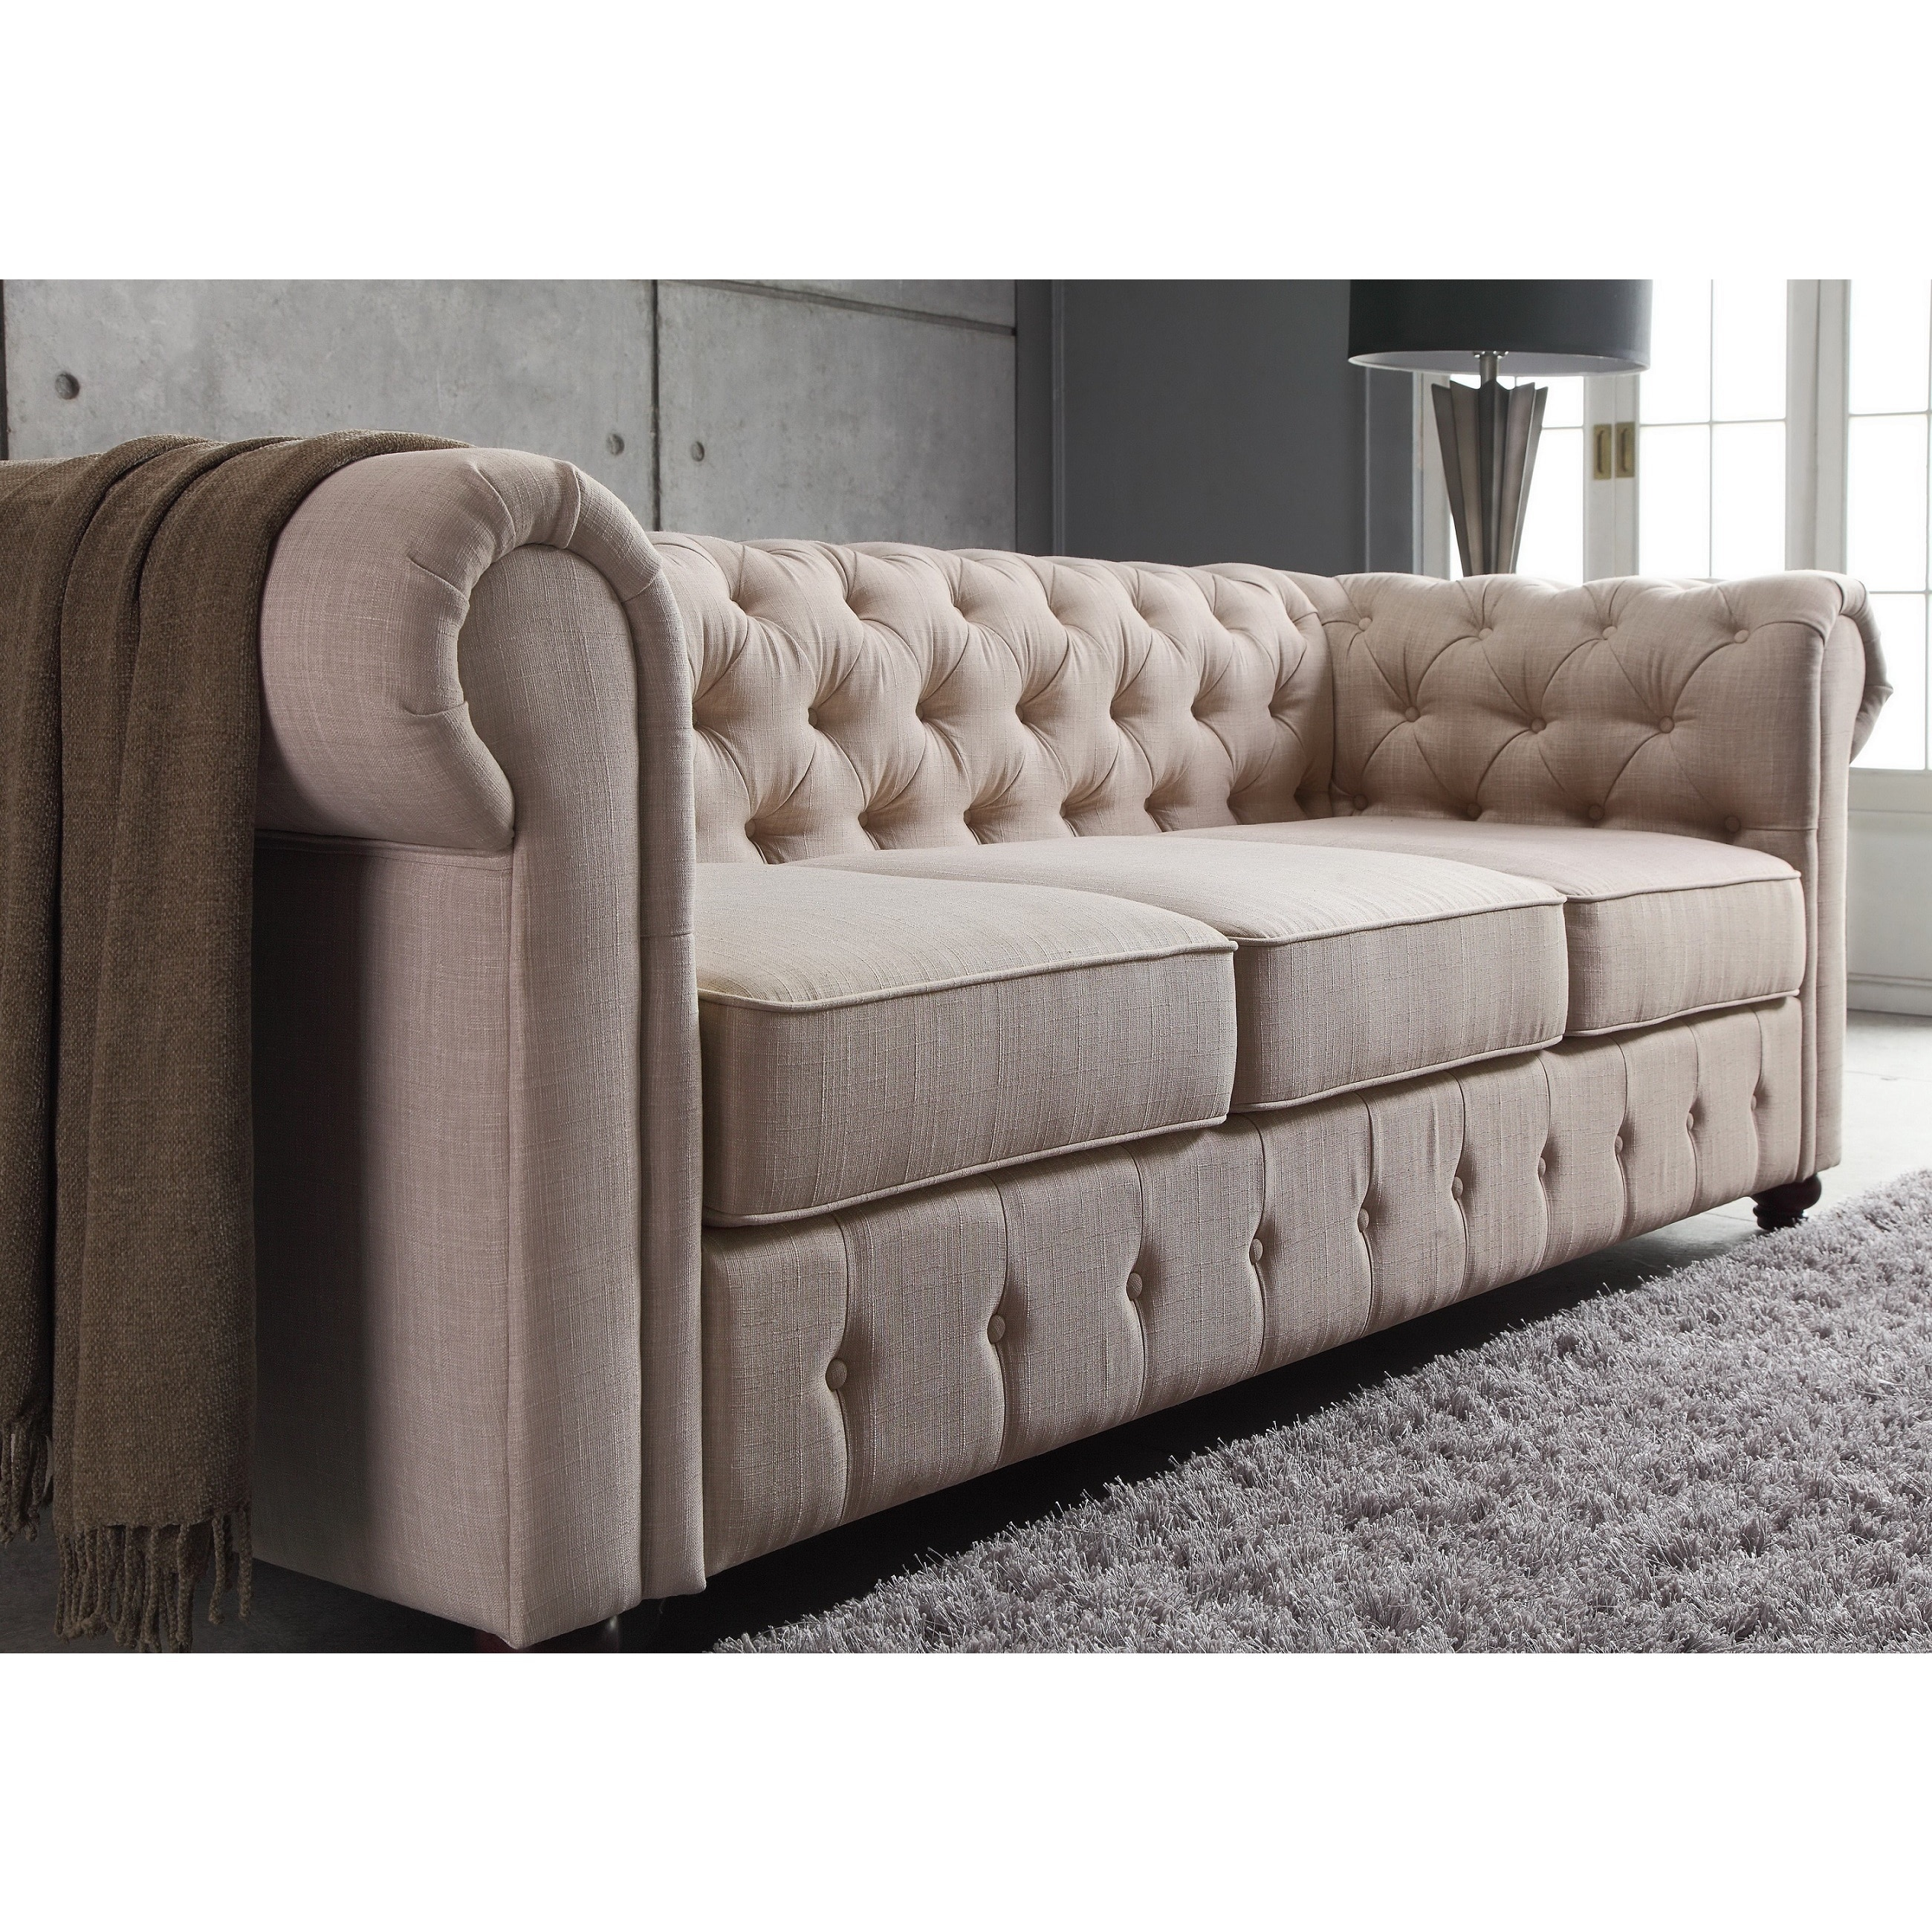 Garcia Hand Tufted Rolled Arms Sofa On Free Shipping Today 12033194